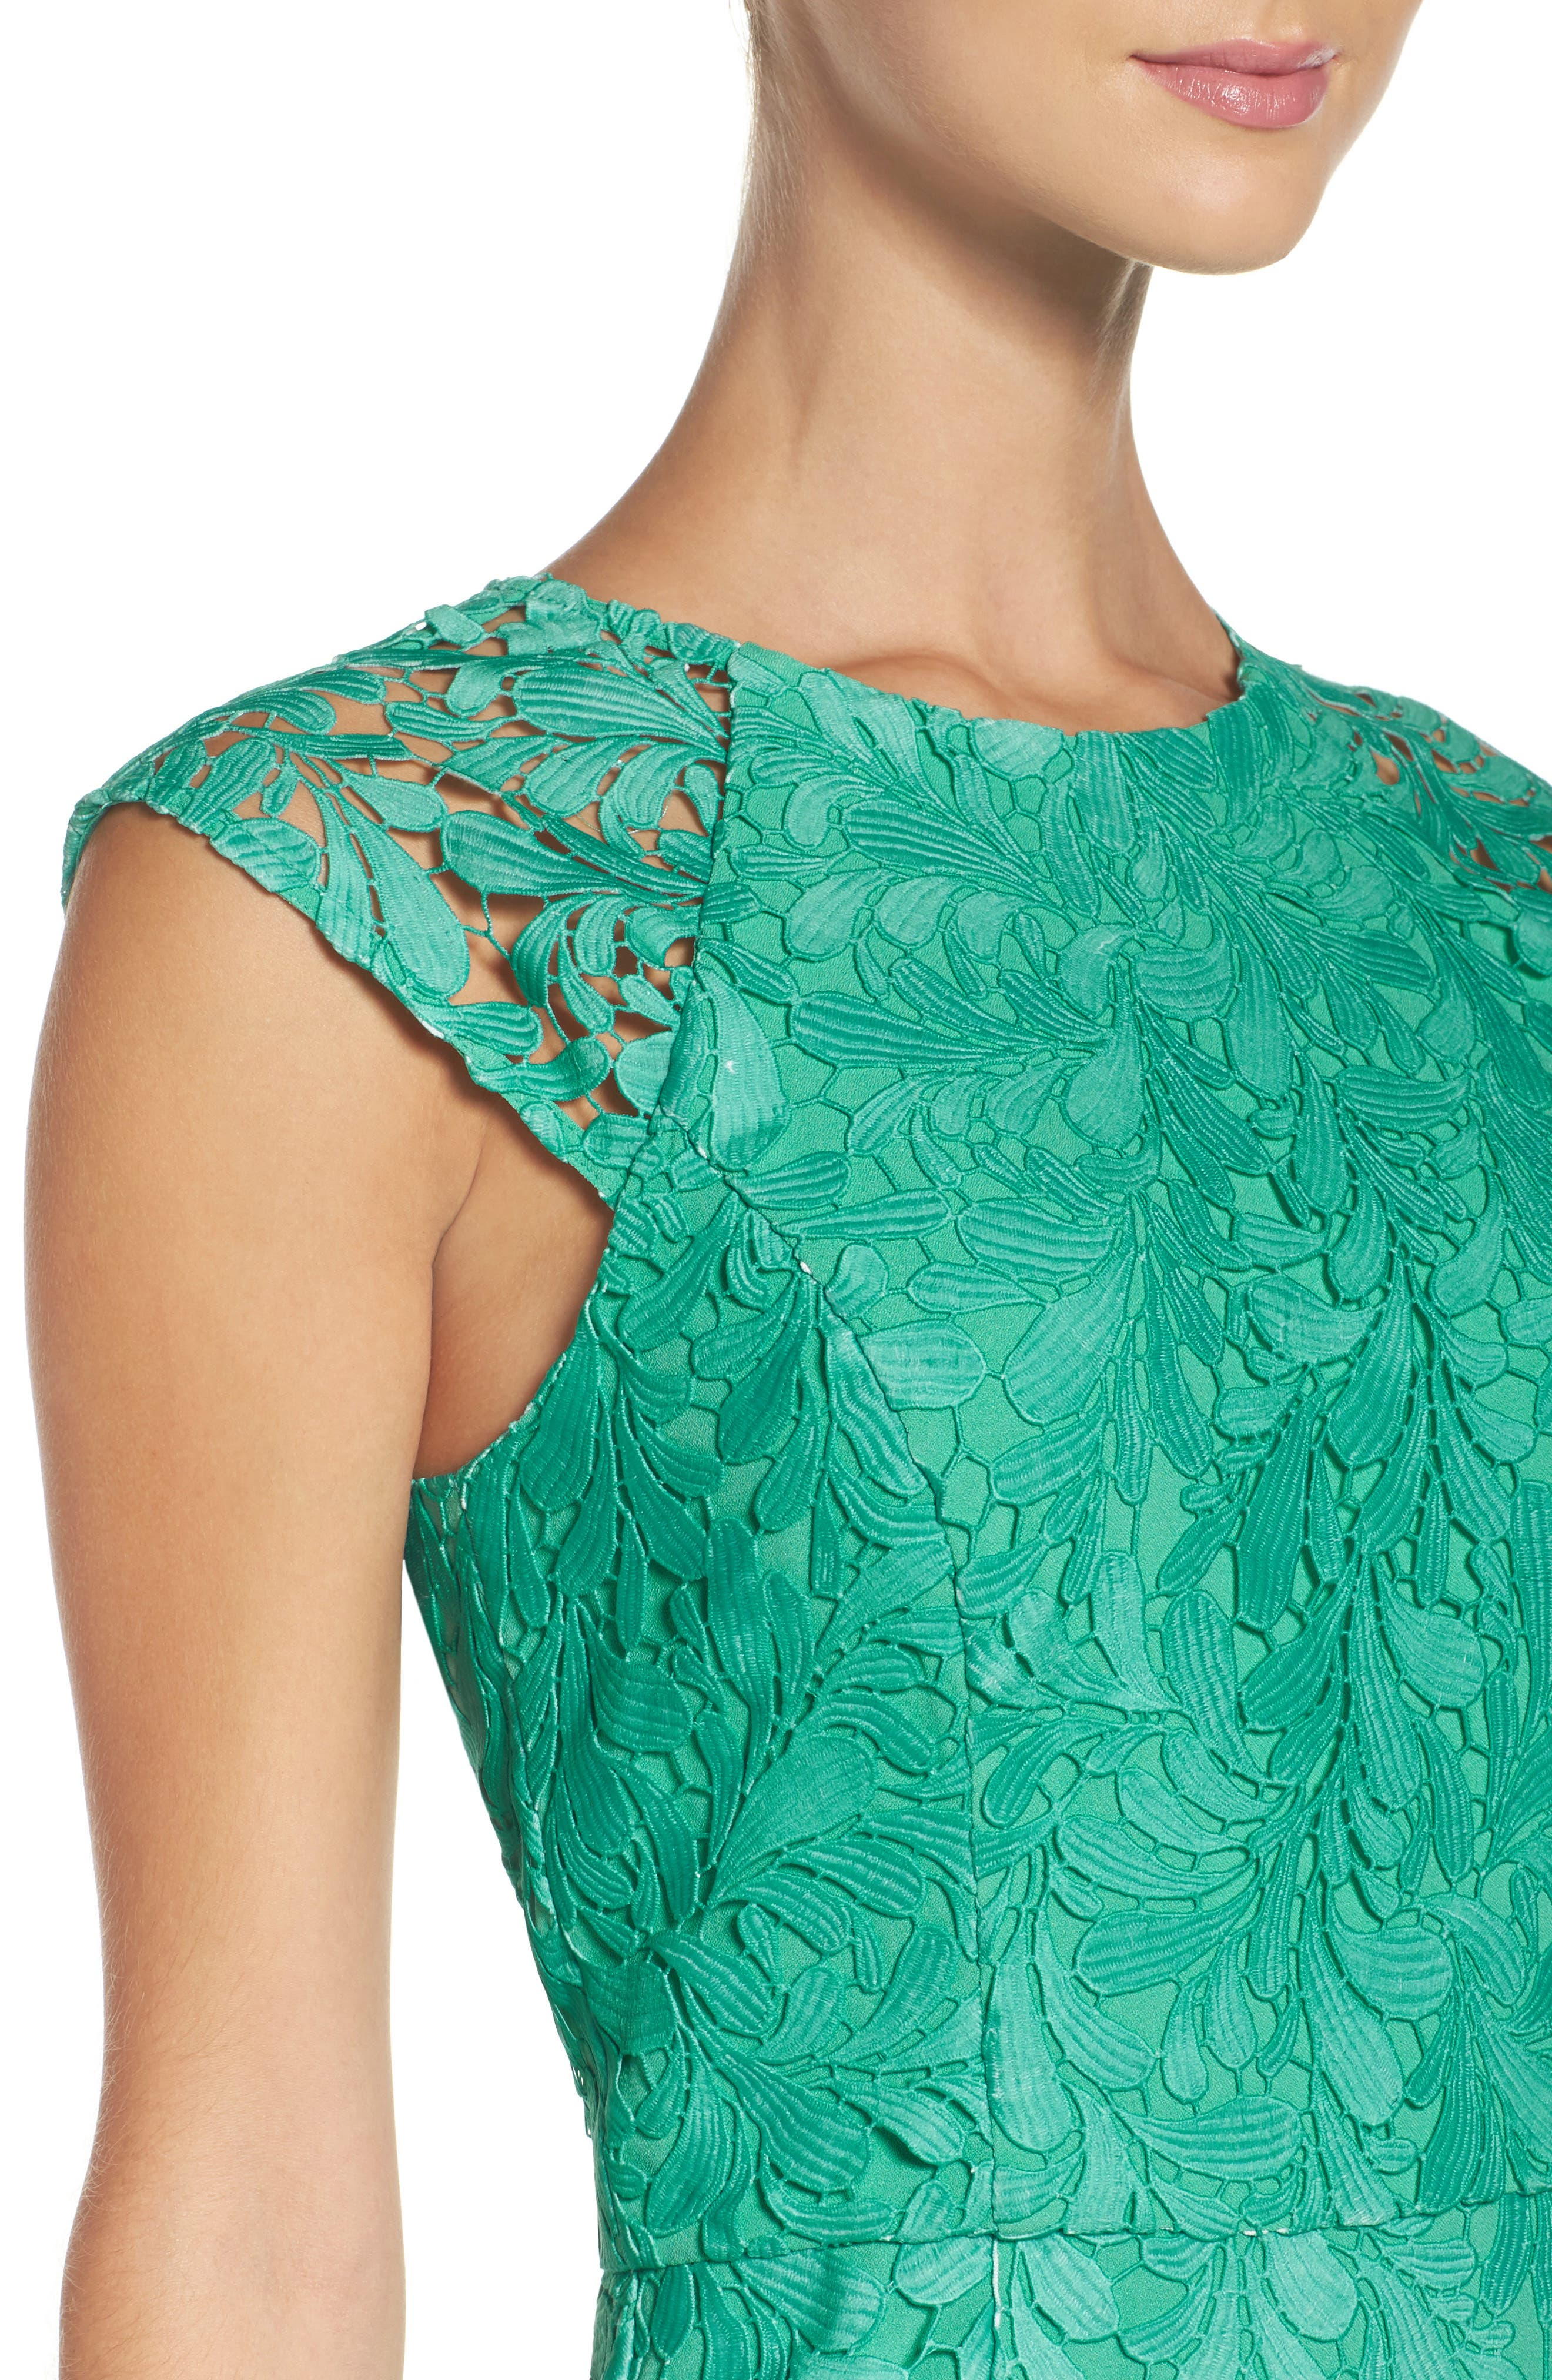 Ombré Lace Sheath Dress,                             Alternate thumbnail 5, color,                             Seafoam